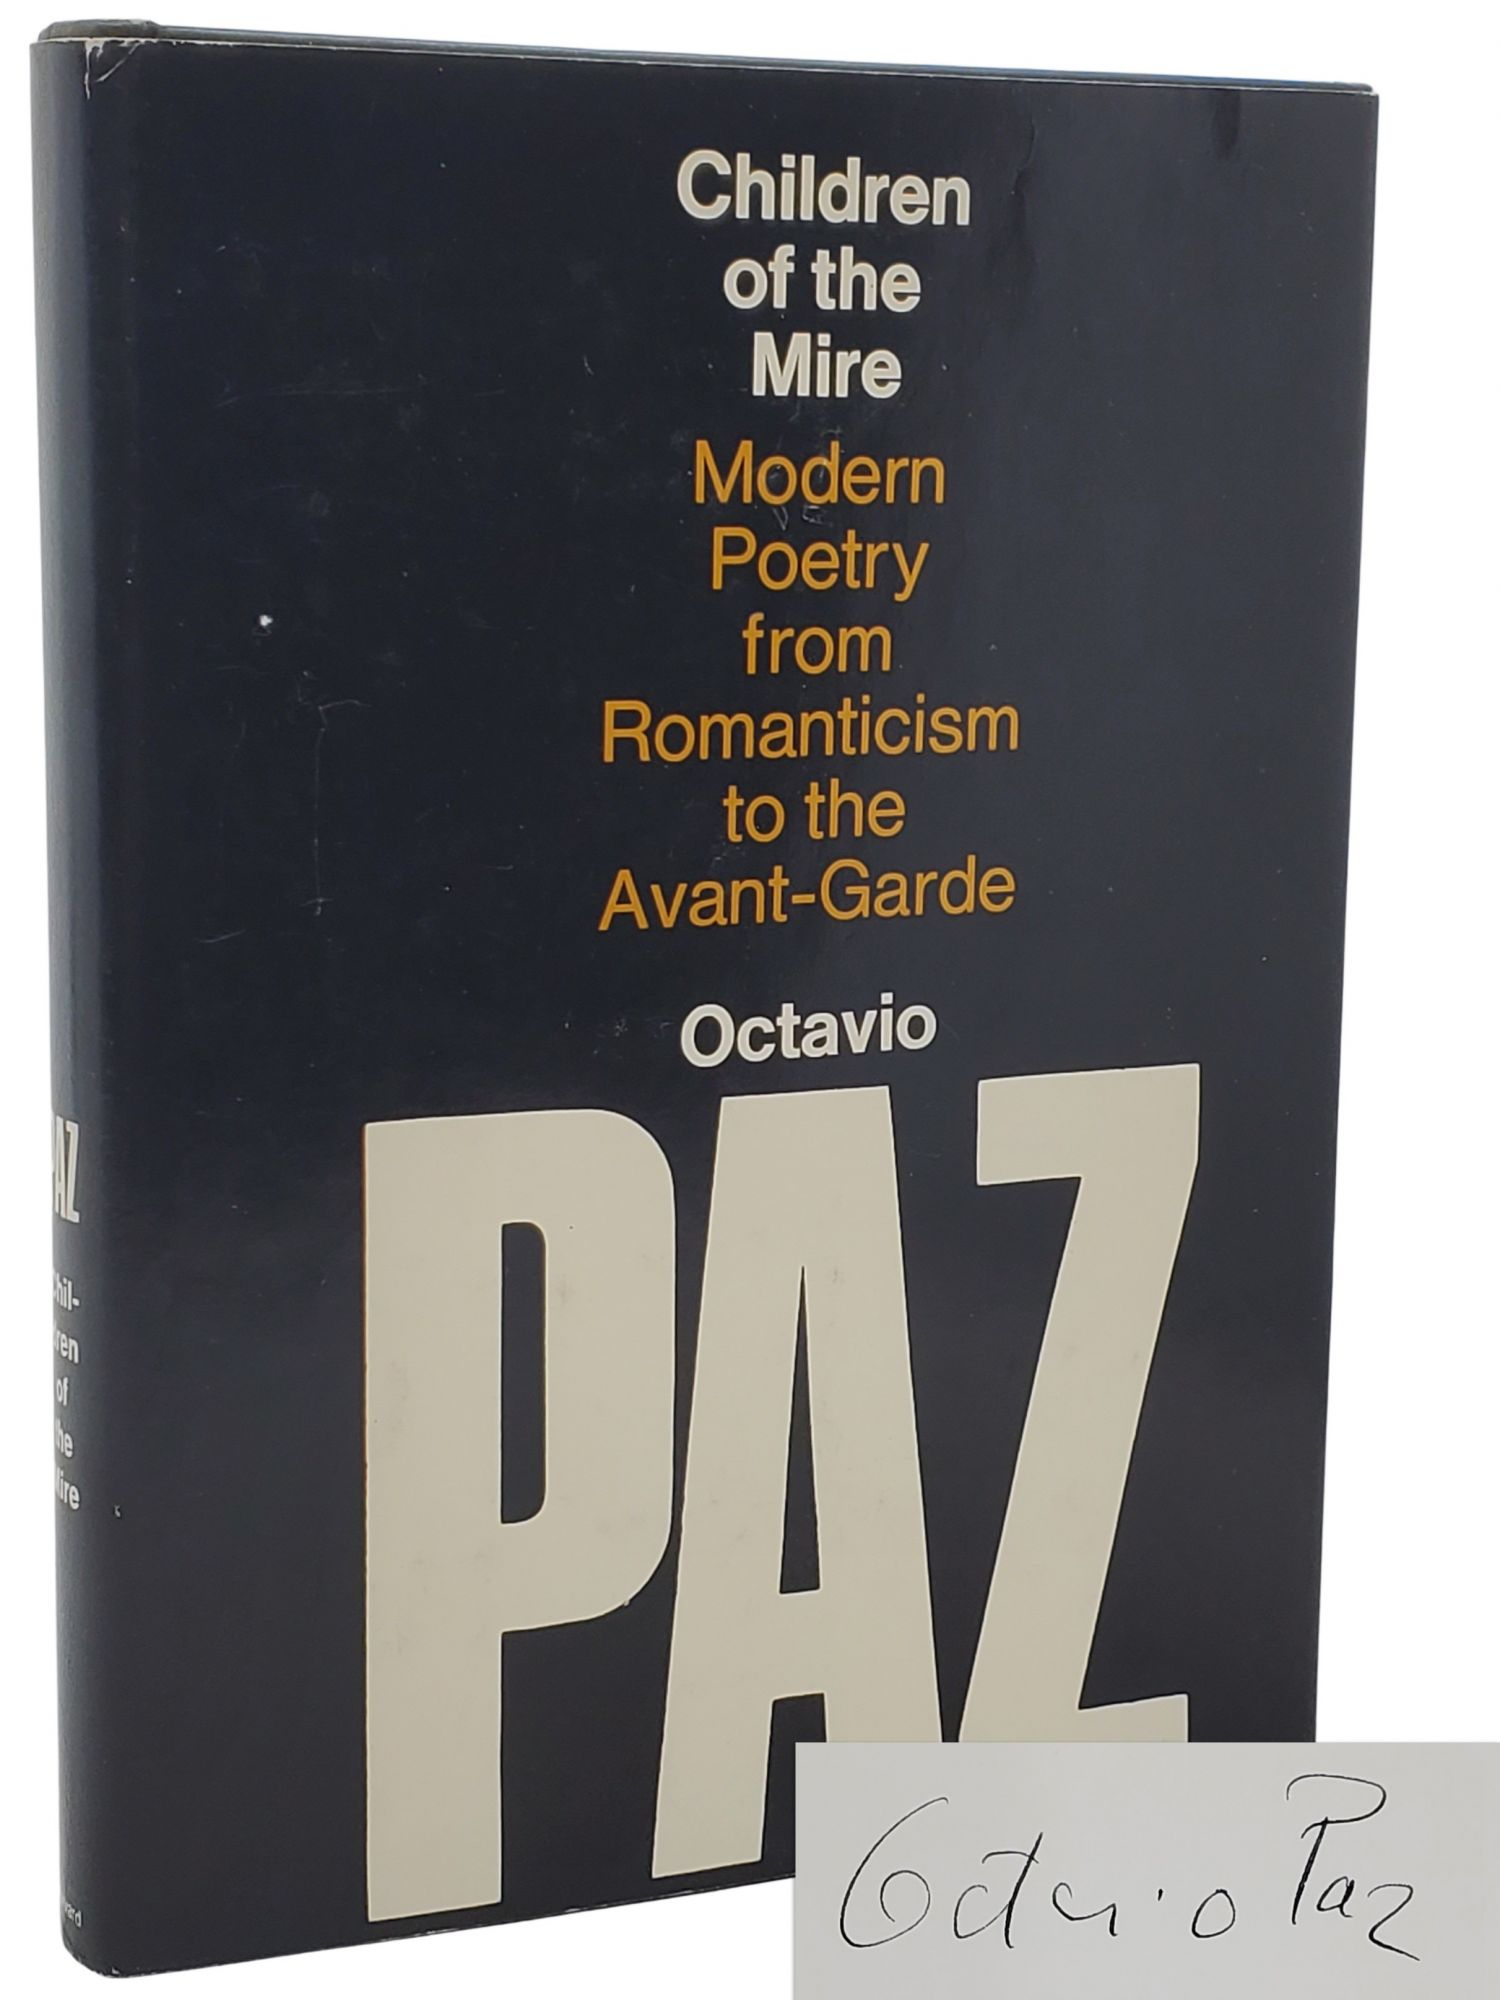 CHILDREN OF THE MIRE [SIGNED]. Modern Poetry from Romanticism to the Avant-Garde. The Charles Eliot Norton Lectures, 1971-1972. Octavio Paz.